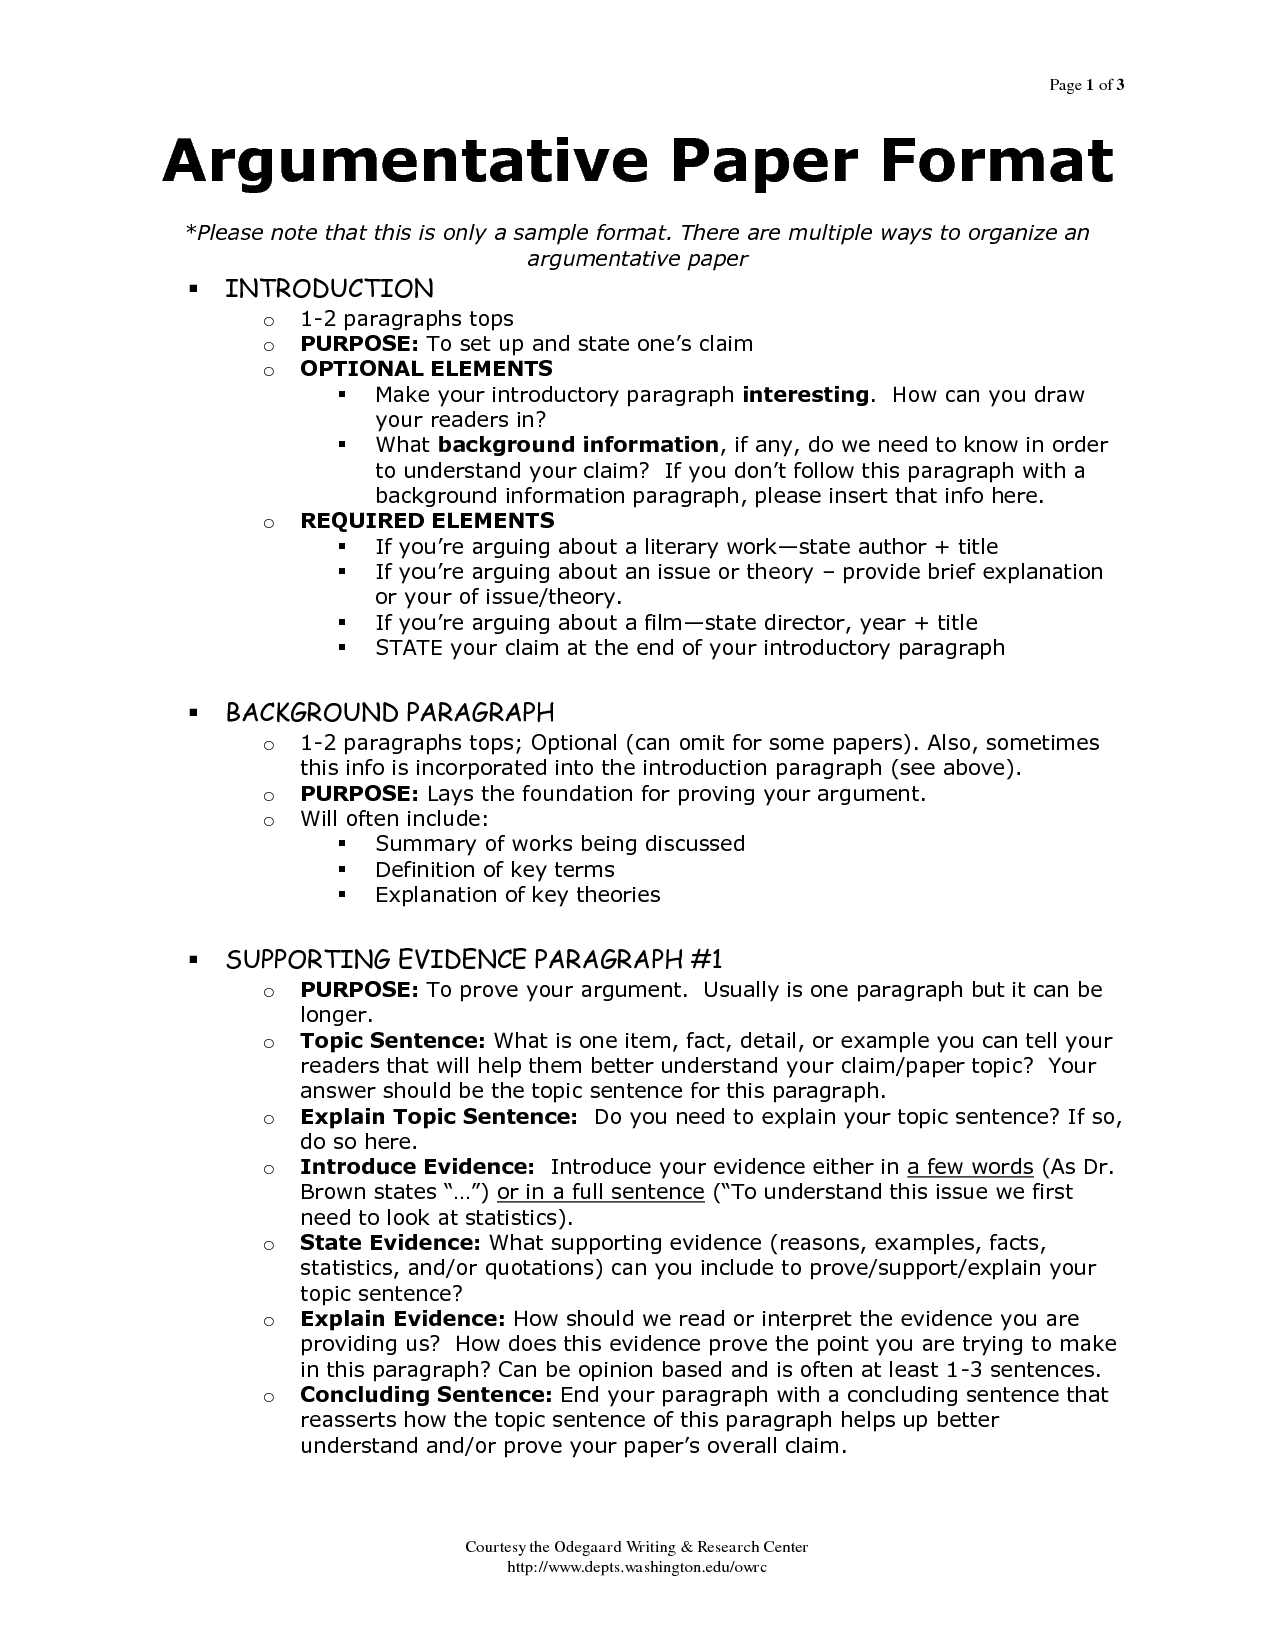 005 Essay Example Sample Of Good Breathtaking Argumentative Outline Middle School About Education Topics For College Students Full